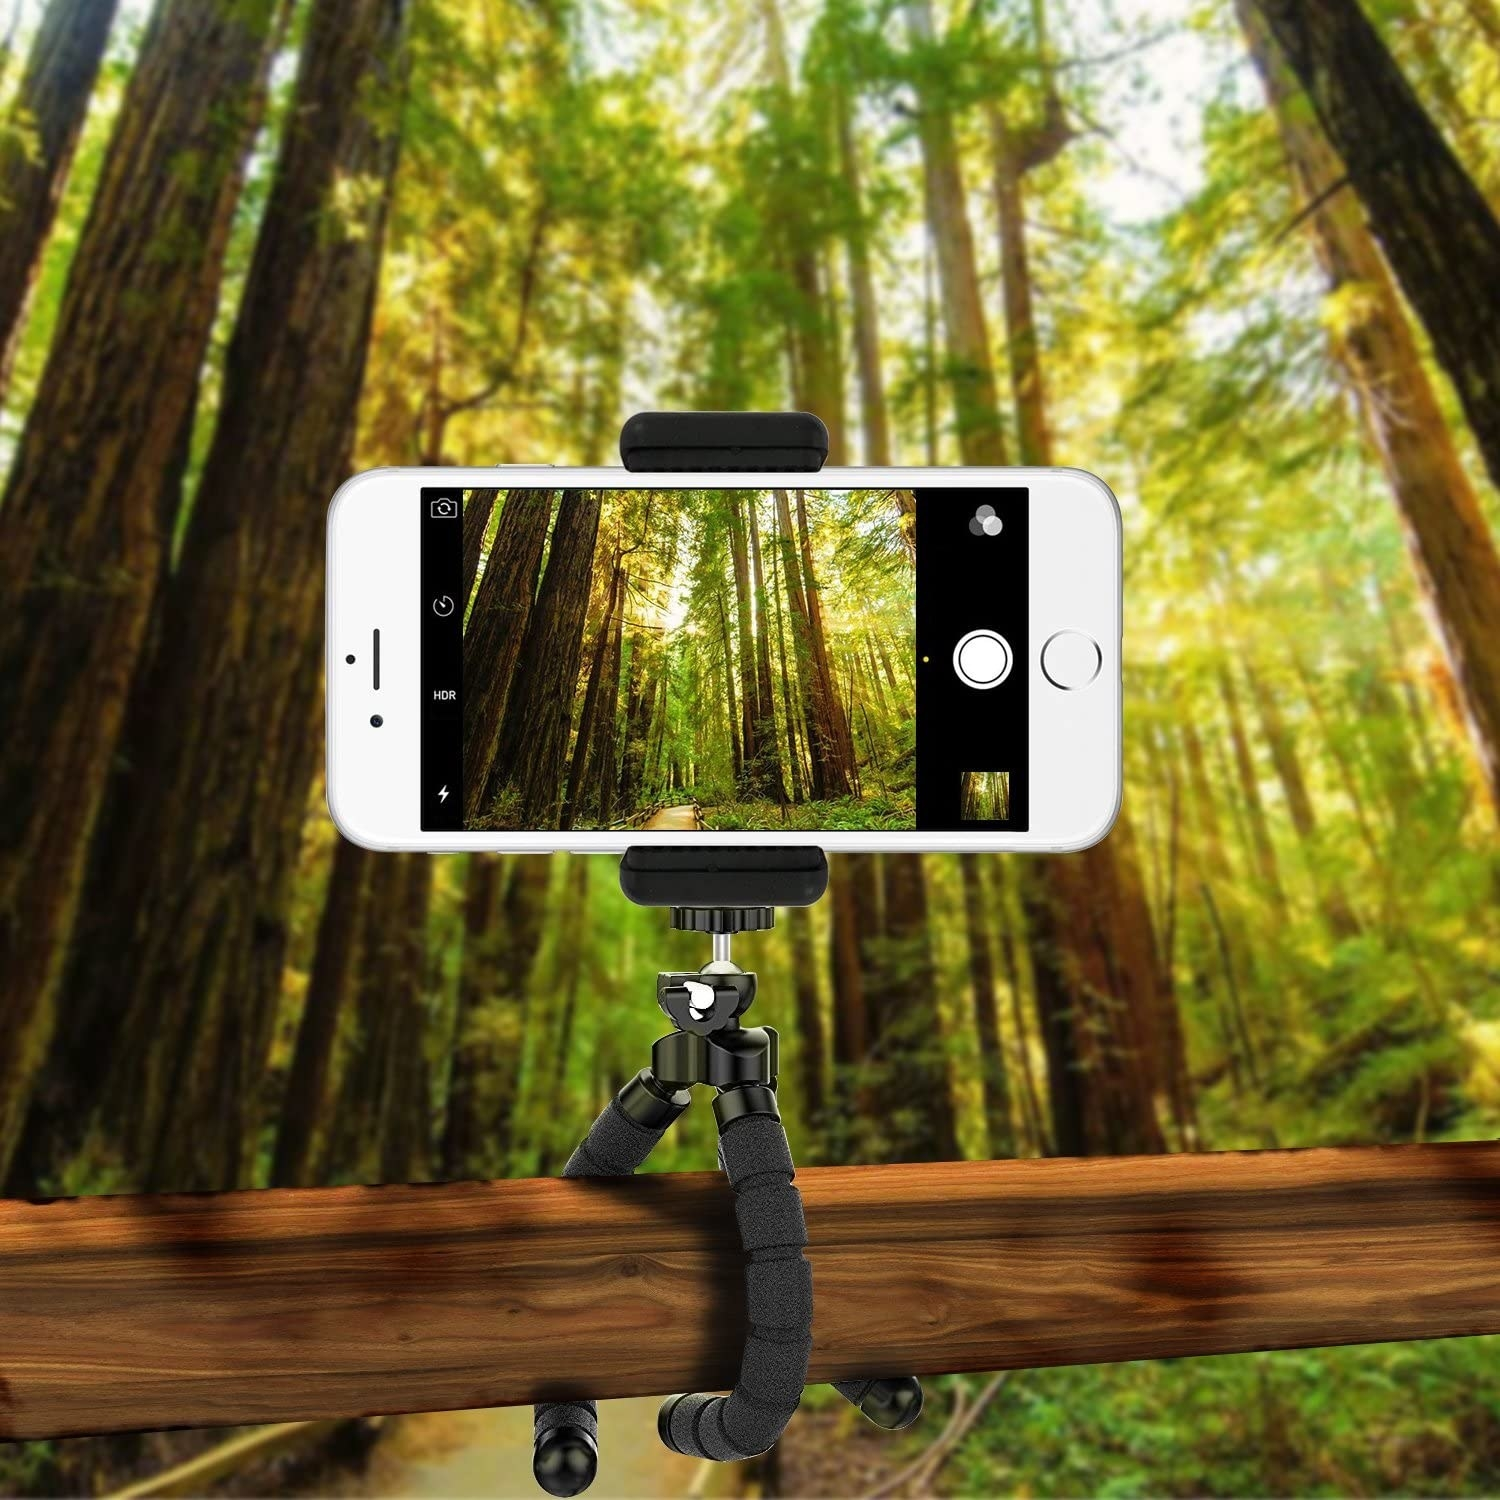 A phone tripod holding an iPhone attached to a wood railing